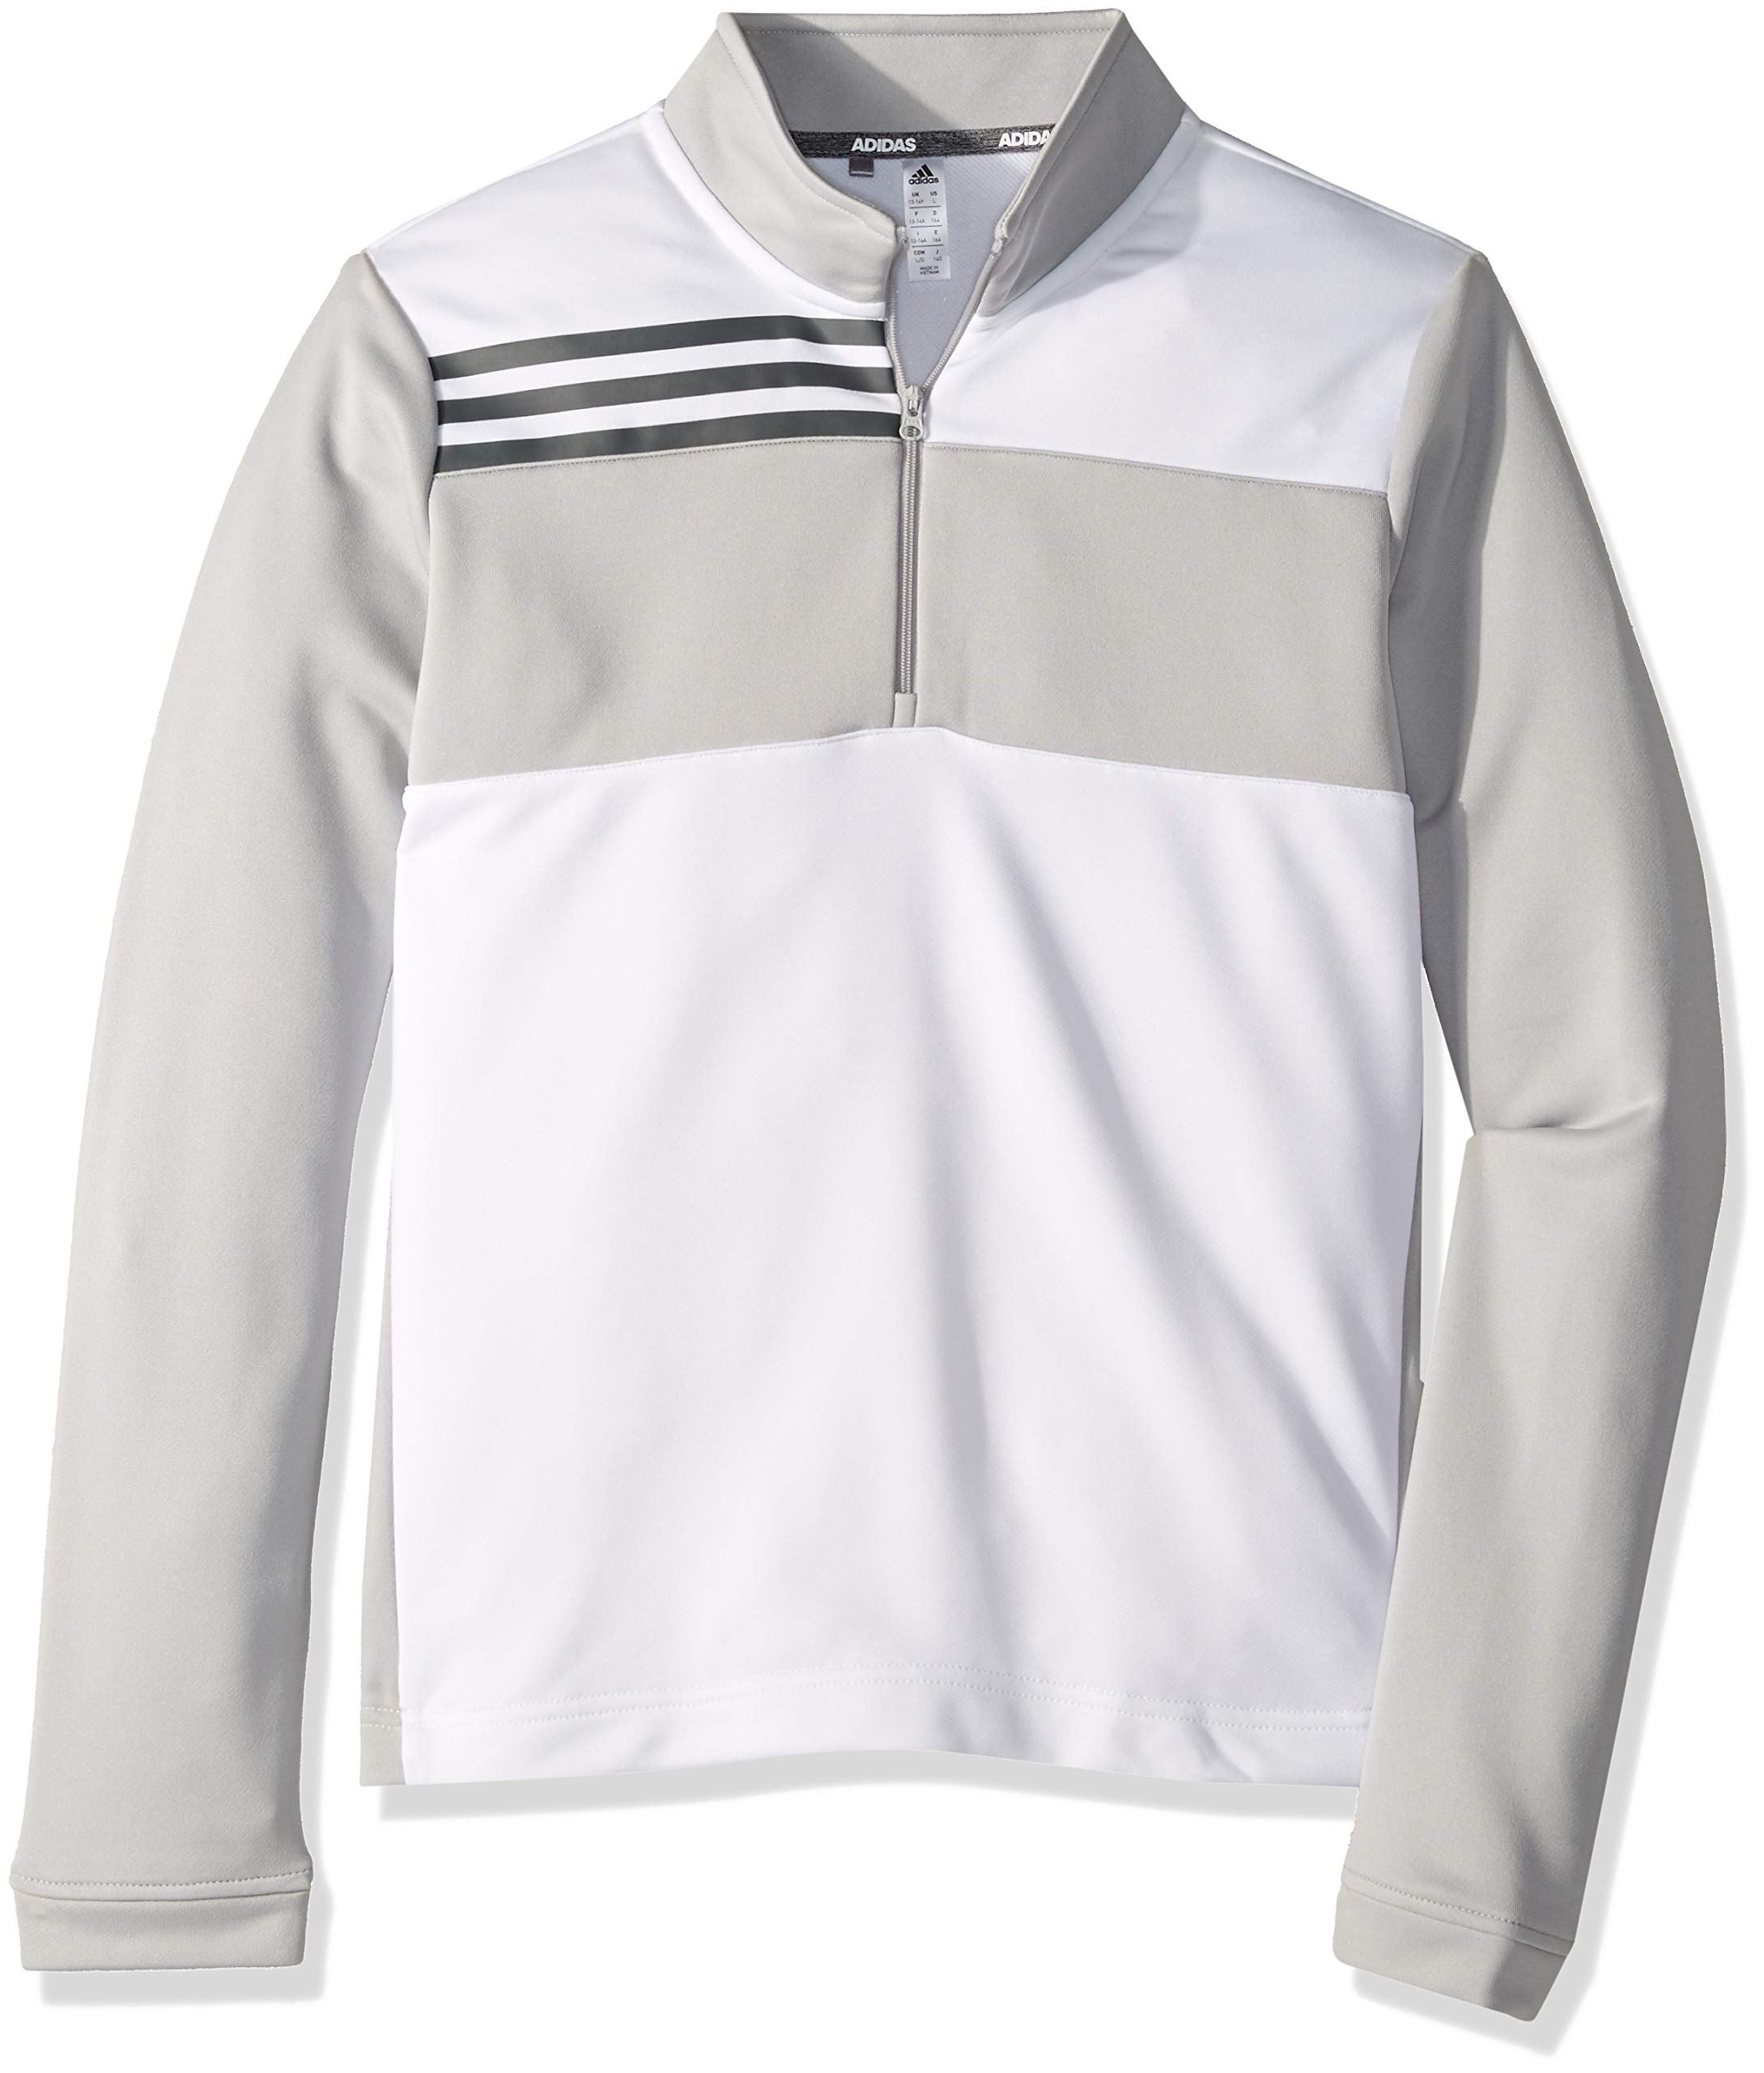 adidas Golf Color Blocked Half Zip Layer, White, X-Small by adidas